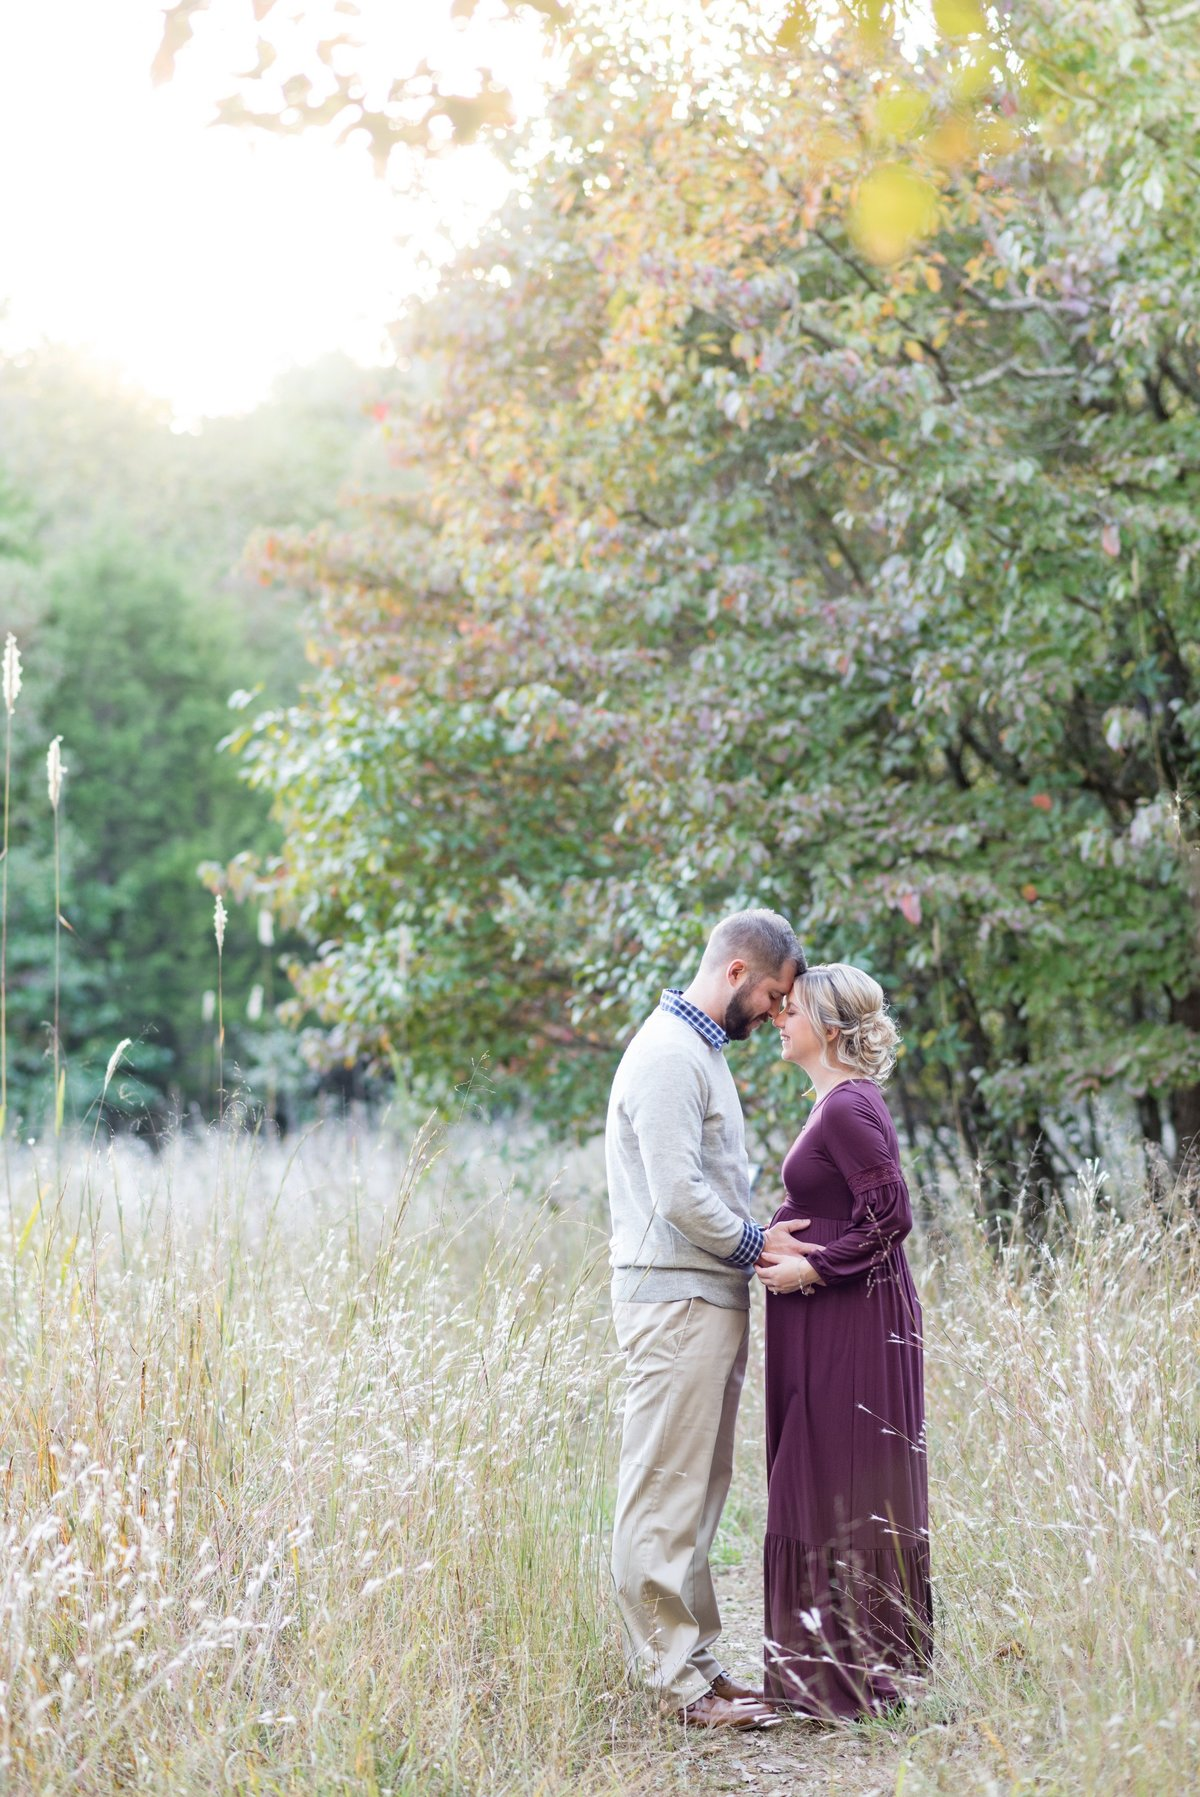 Nashville-Lifestyle-Family-Maternity-and-Milestones-Photographer+1